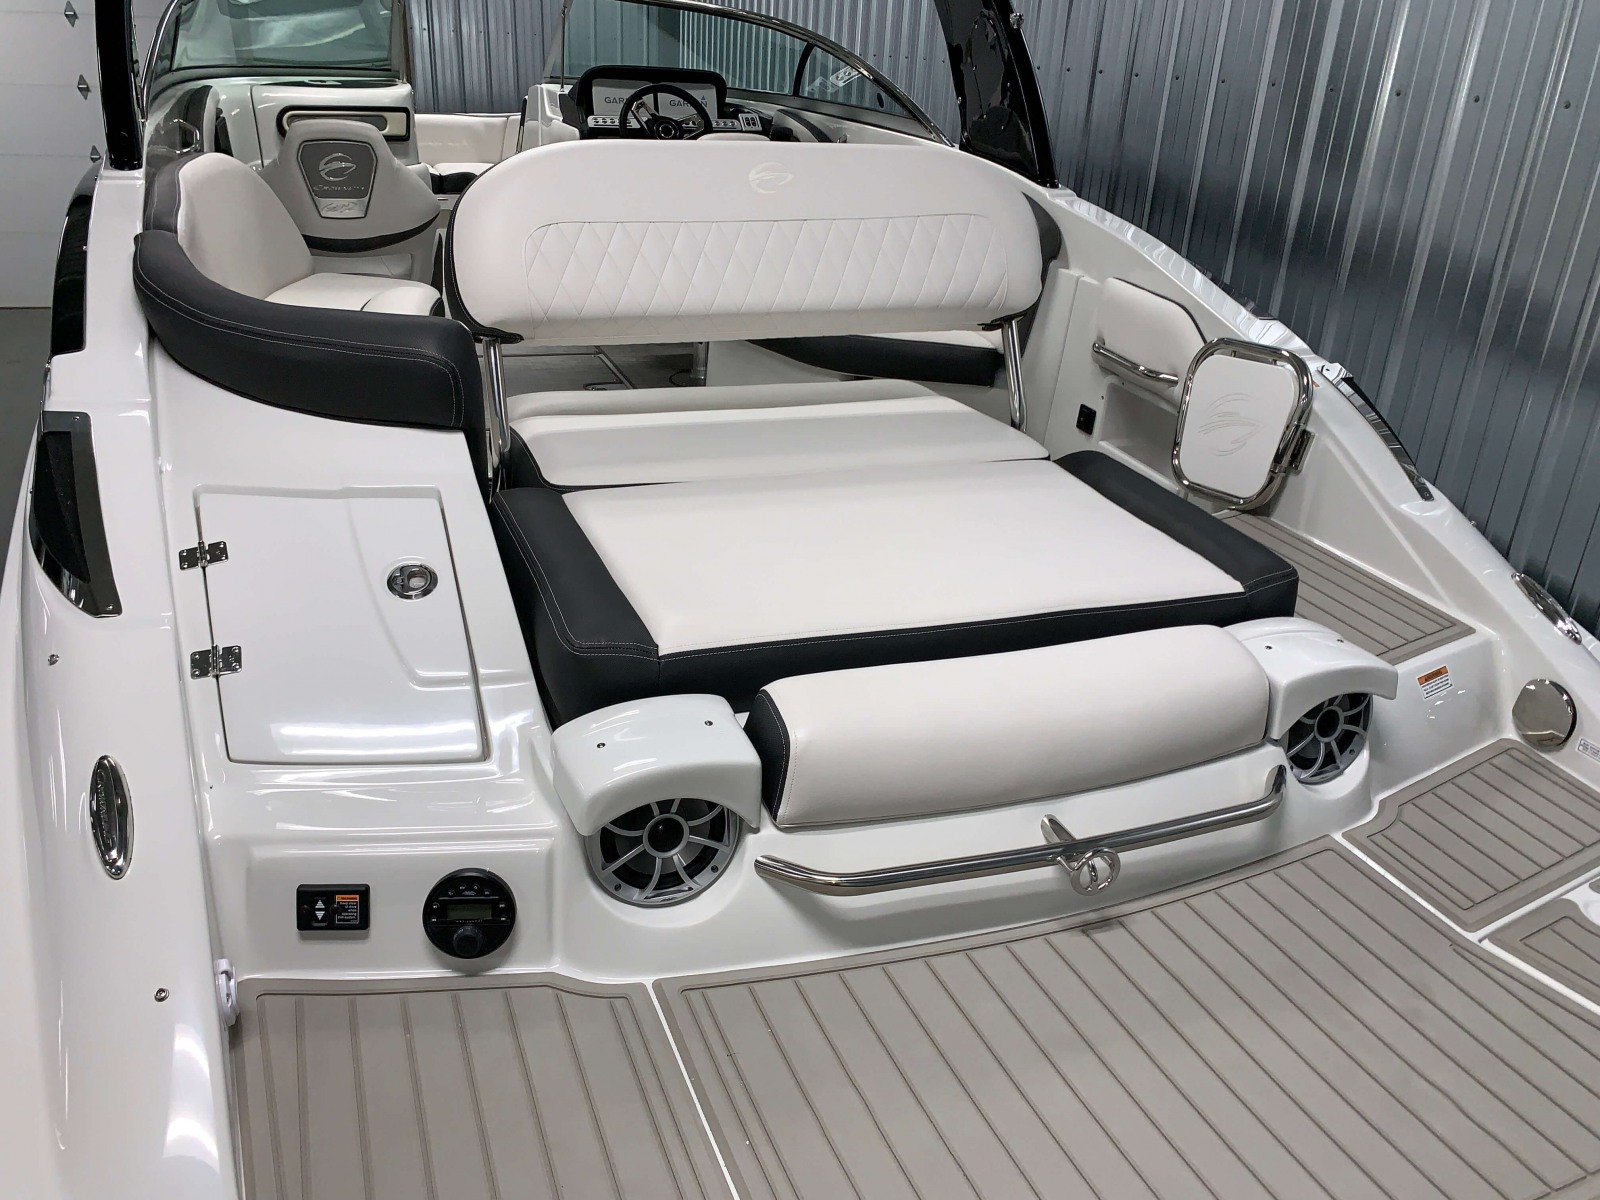 Rear Facing Sun Lounge of the 2021 Crownline 280 SS Bowrider Boat